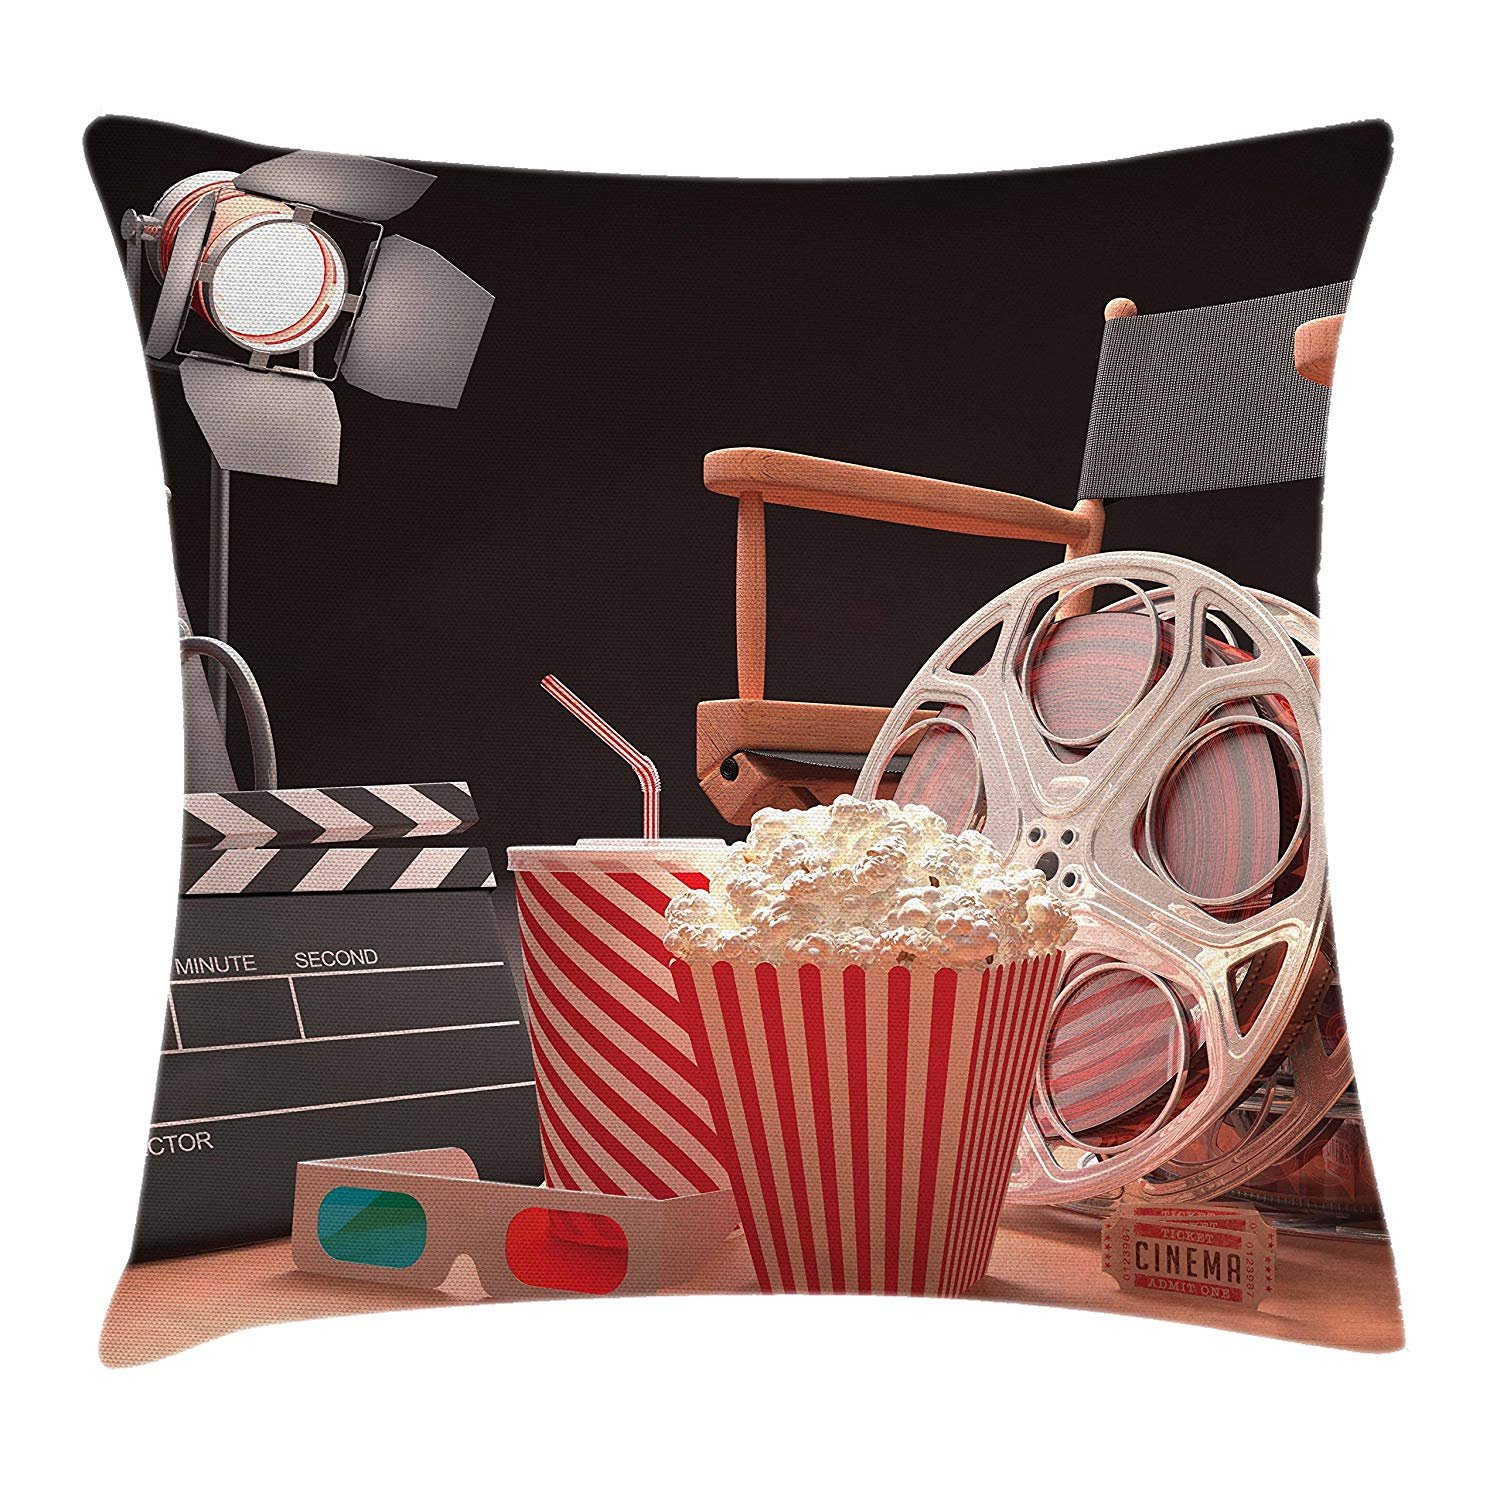 Queen Area Movie Theater Objects of the Film Industry Hollywood Motion Picture Cinematography Concept Square Throw Pillow Covers Cushion Case for Sofa Bedroom Car 18x18 Inch, Multicolor